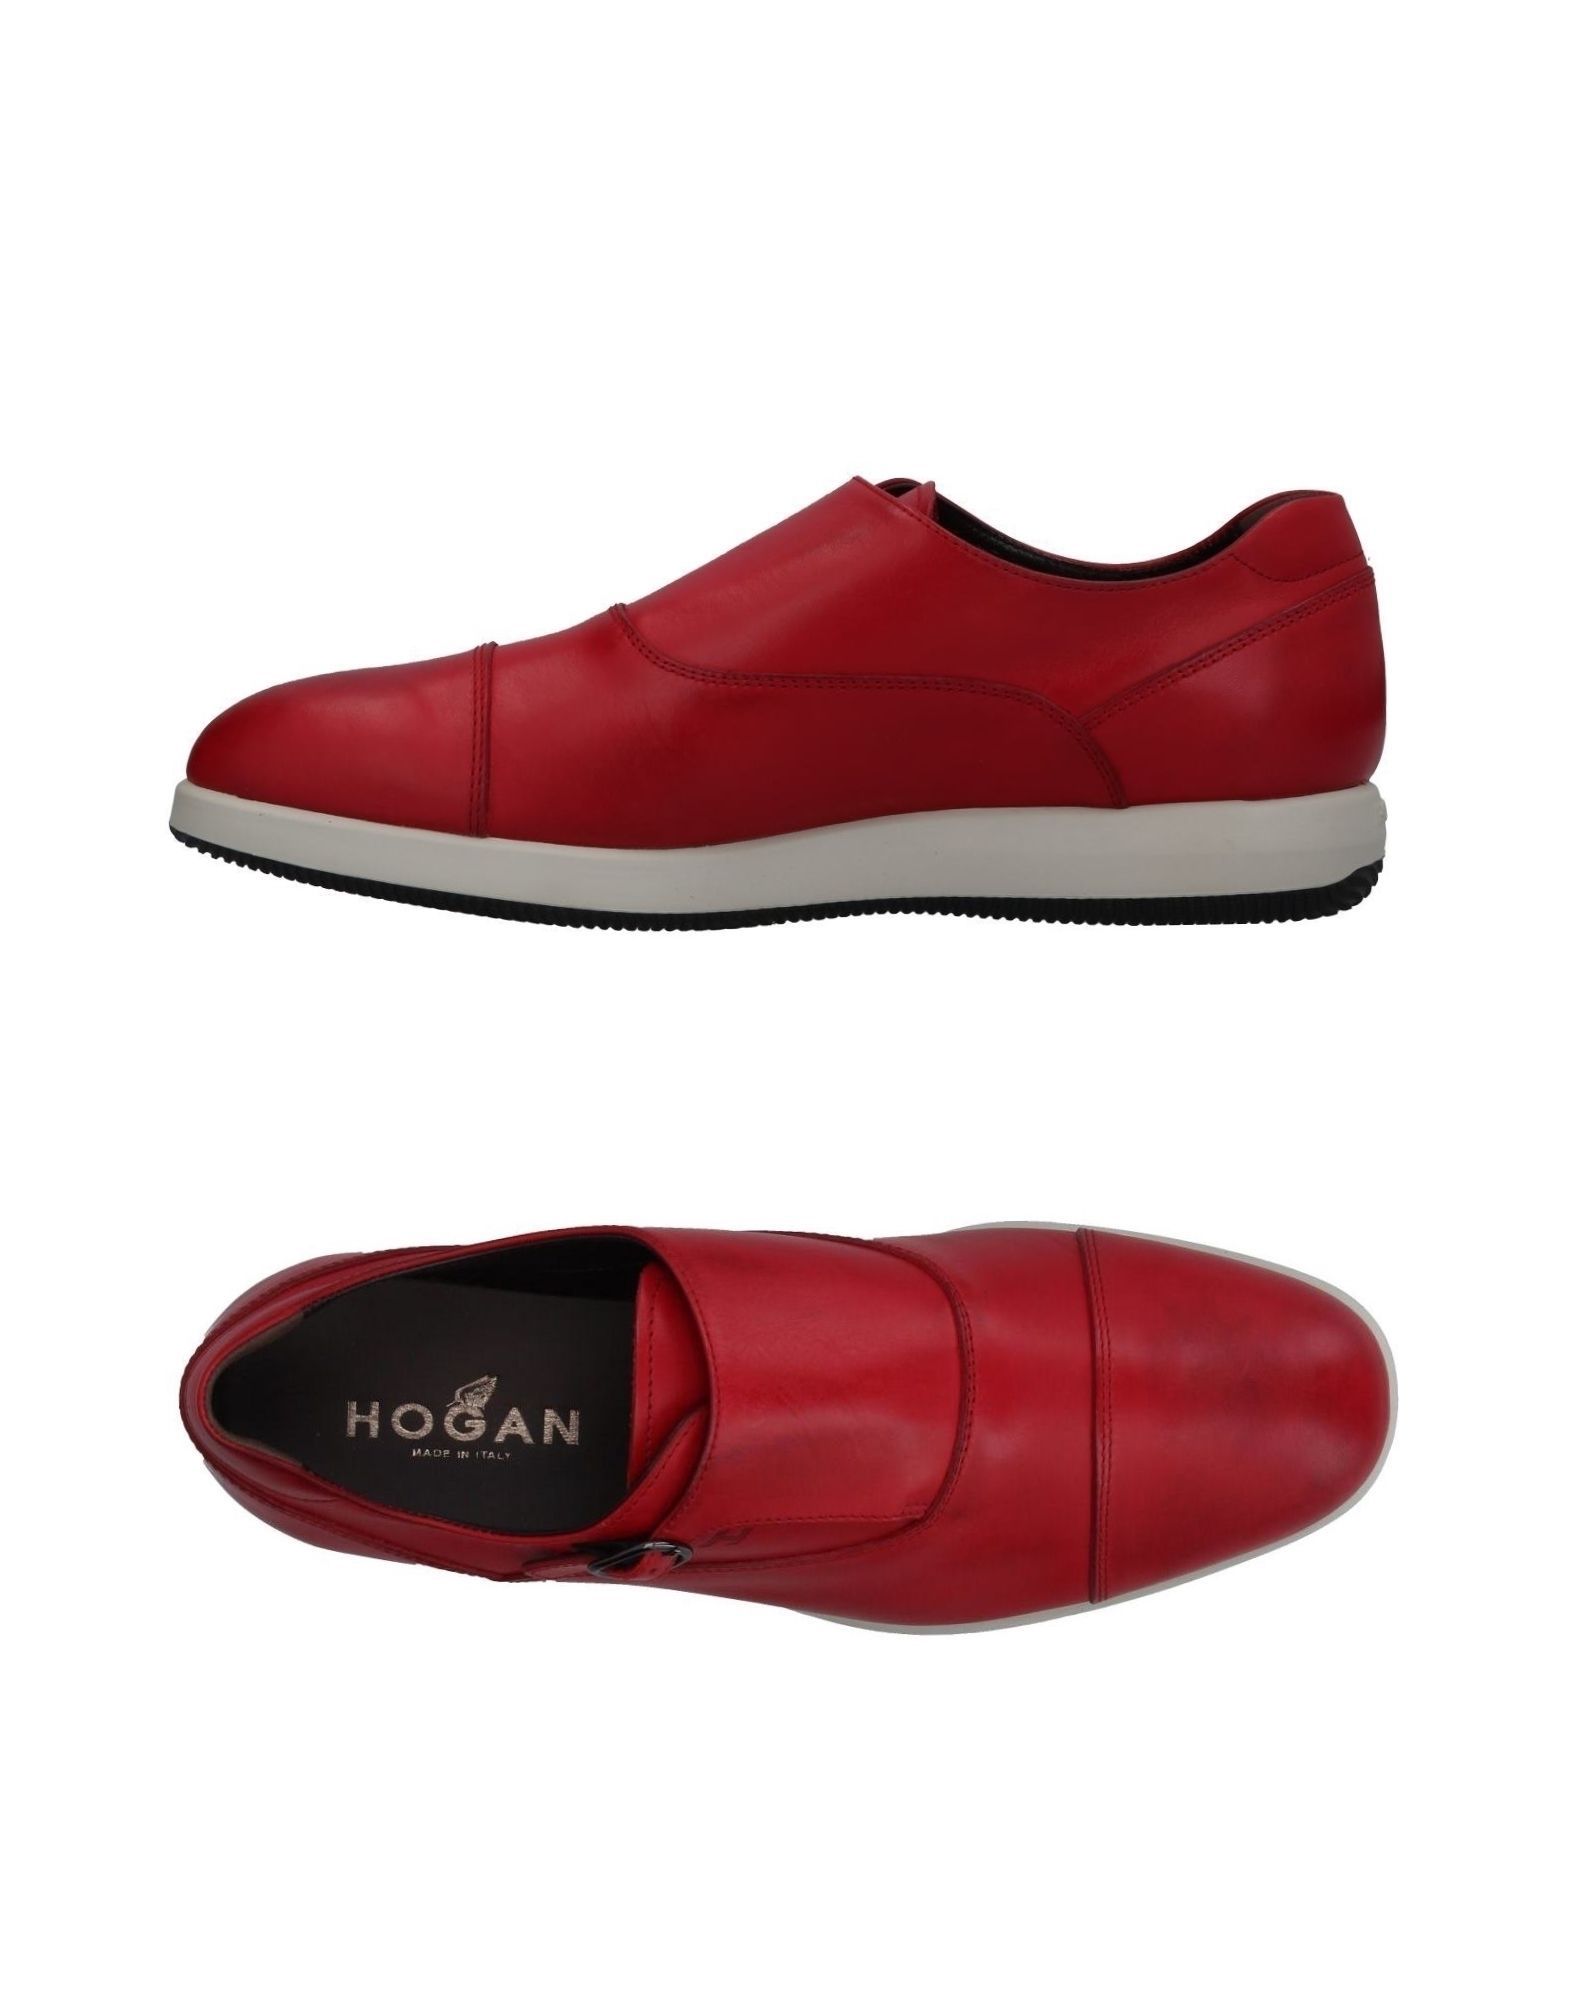 Mocassino Hogan Uomo - Acquista online su